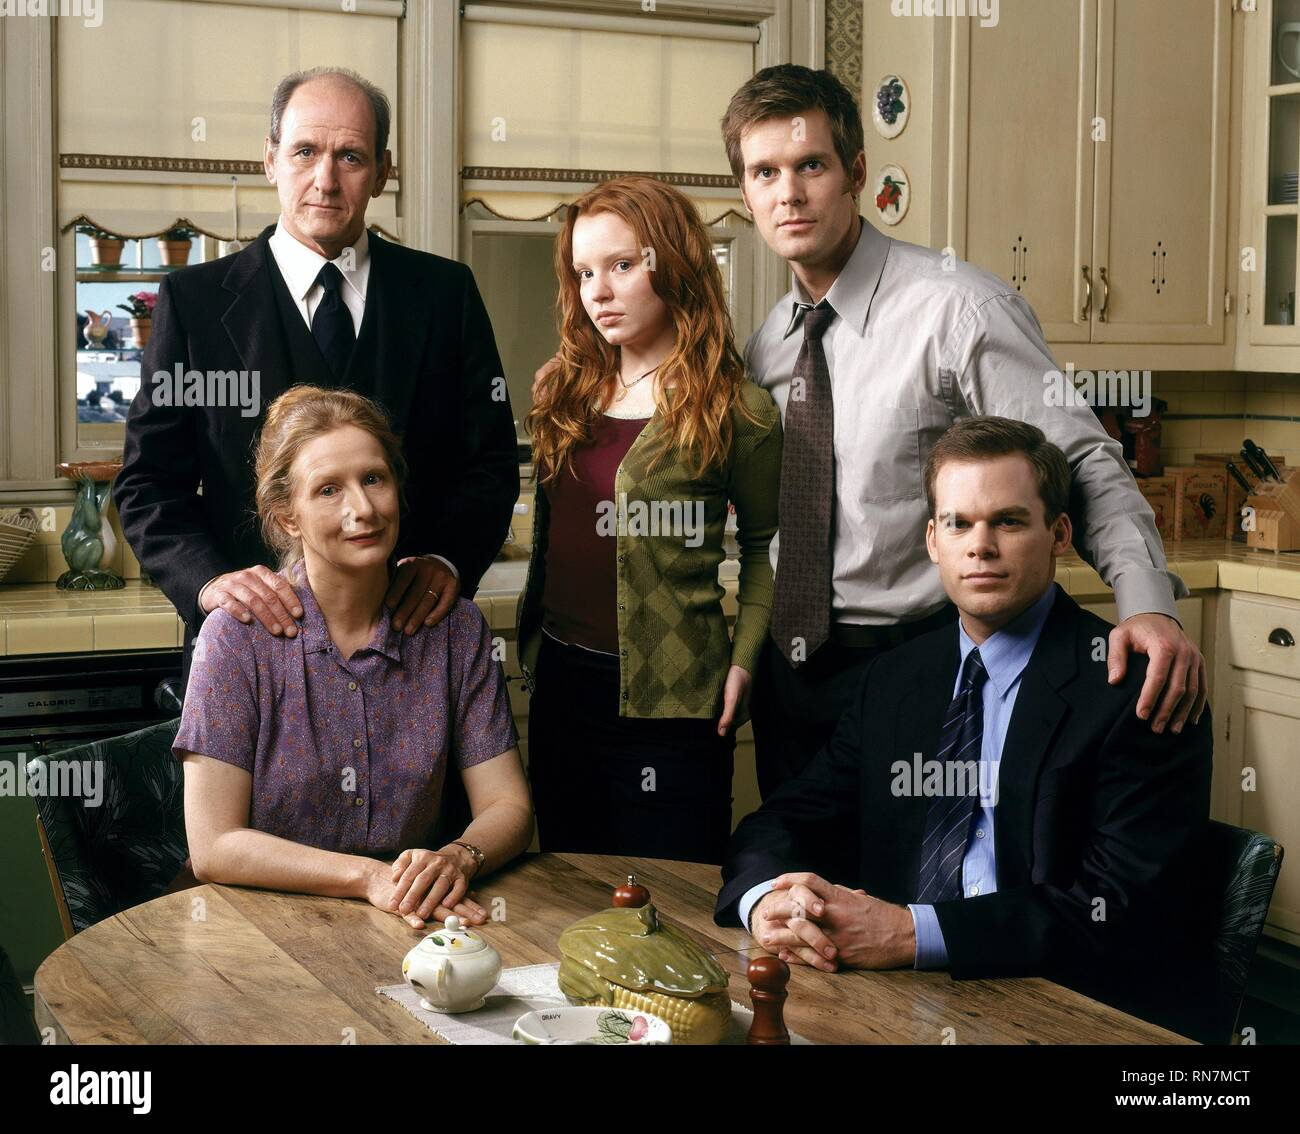 RICHARD JENKINS, FRANCES CONROY, LAUREN AMBROSE, PETER KRAUSE,MICHAEL C. HALL, SIX FEET UNDER, 2001 - Stock Image